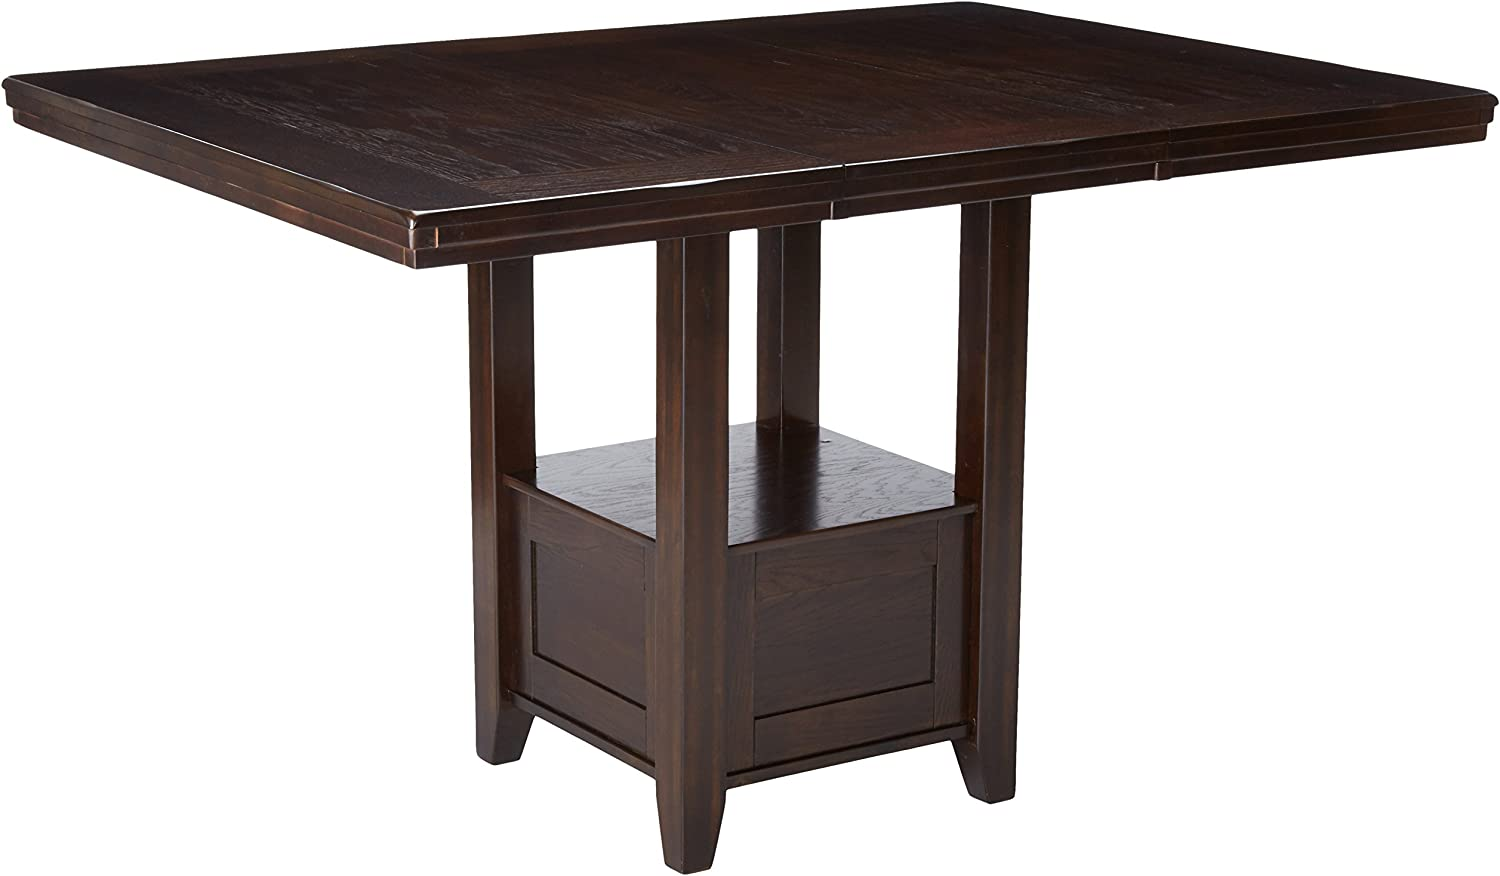 Signature Design By Ashley – Haddigan Rectangular Dining Room Counter Extention Table – Casual Style – Dark Brown